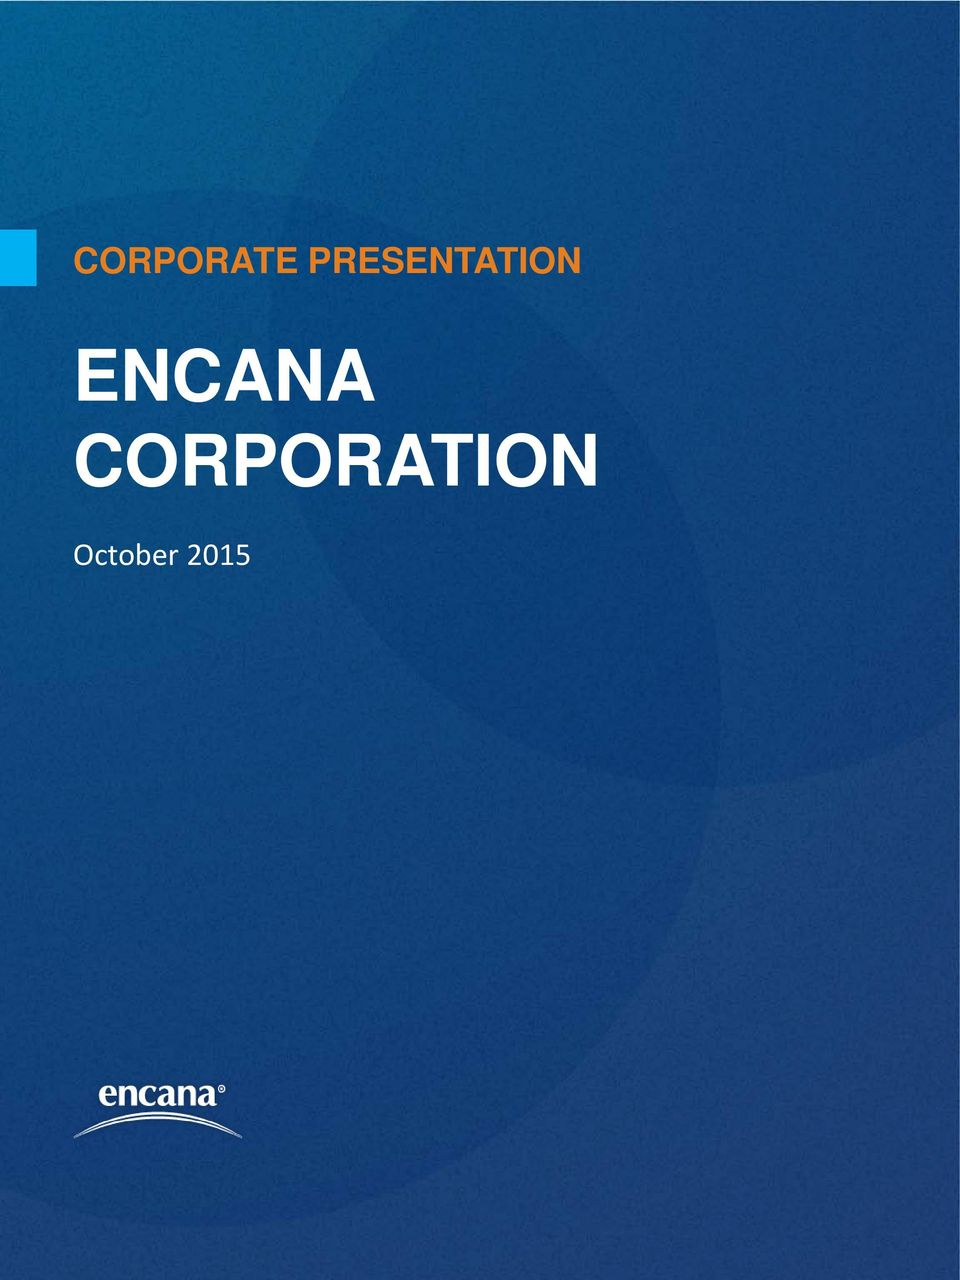 Corporate Presentation Encana Corporation Pdf